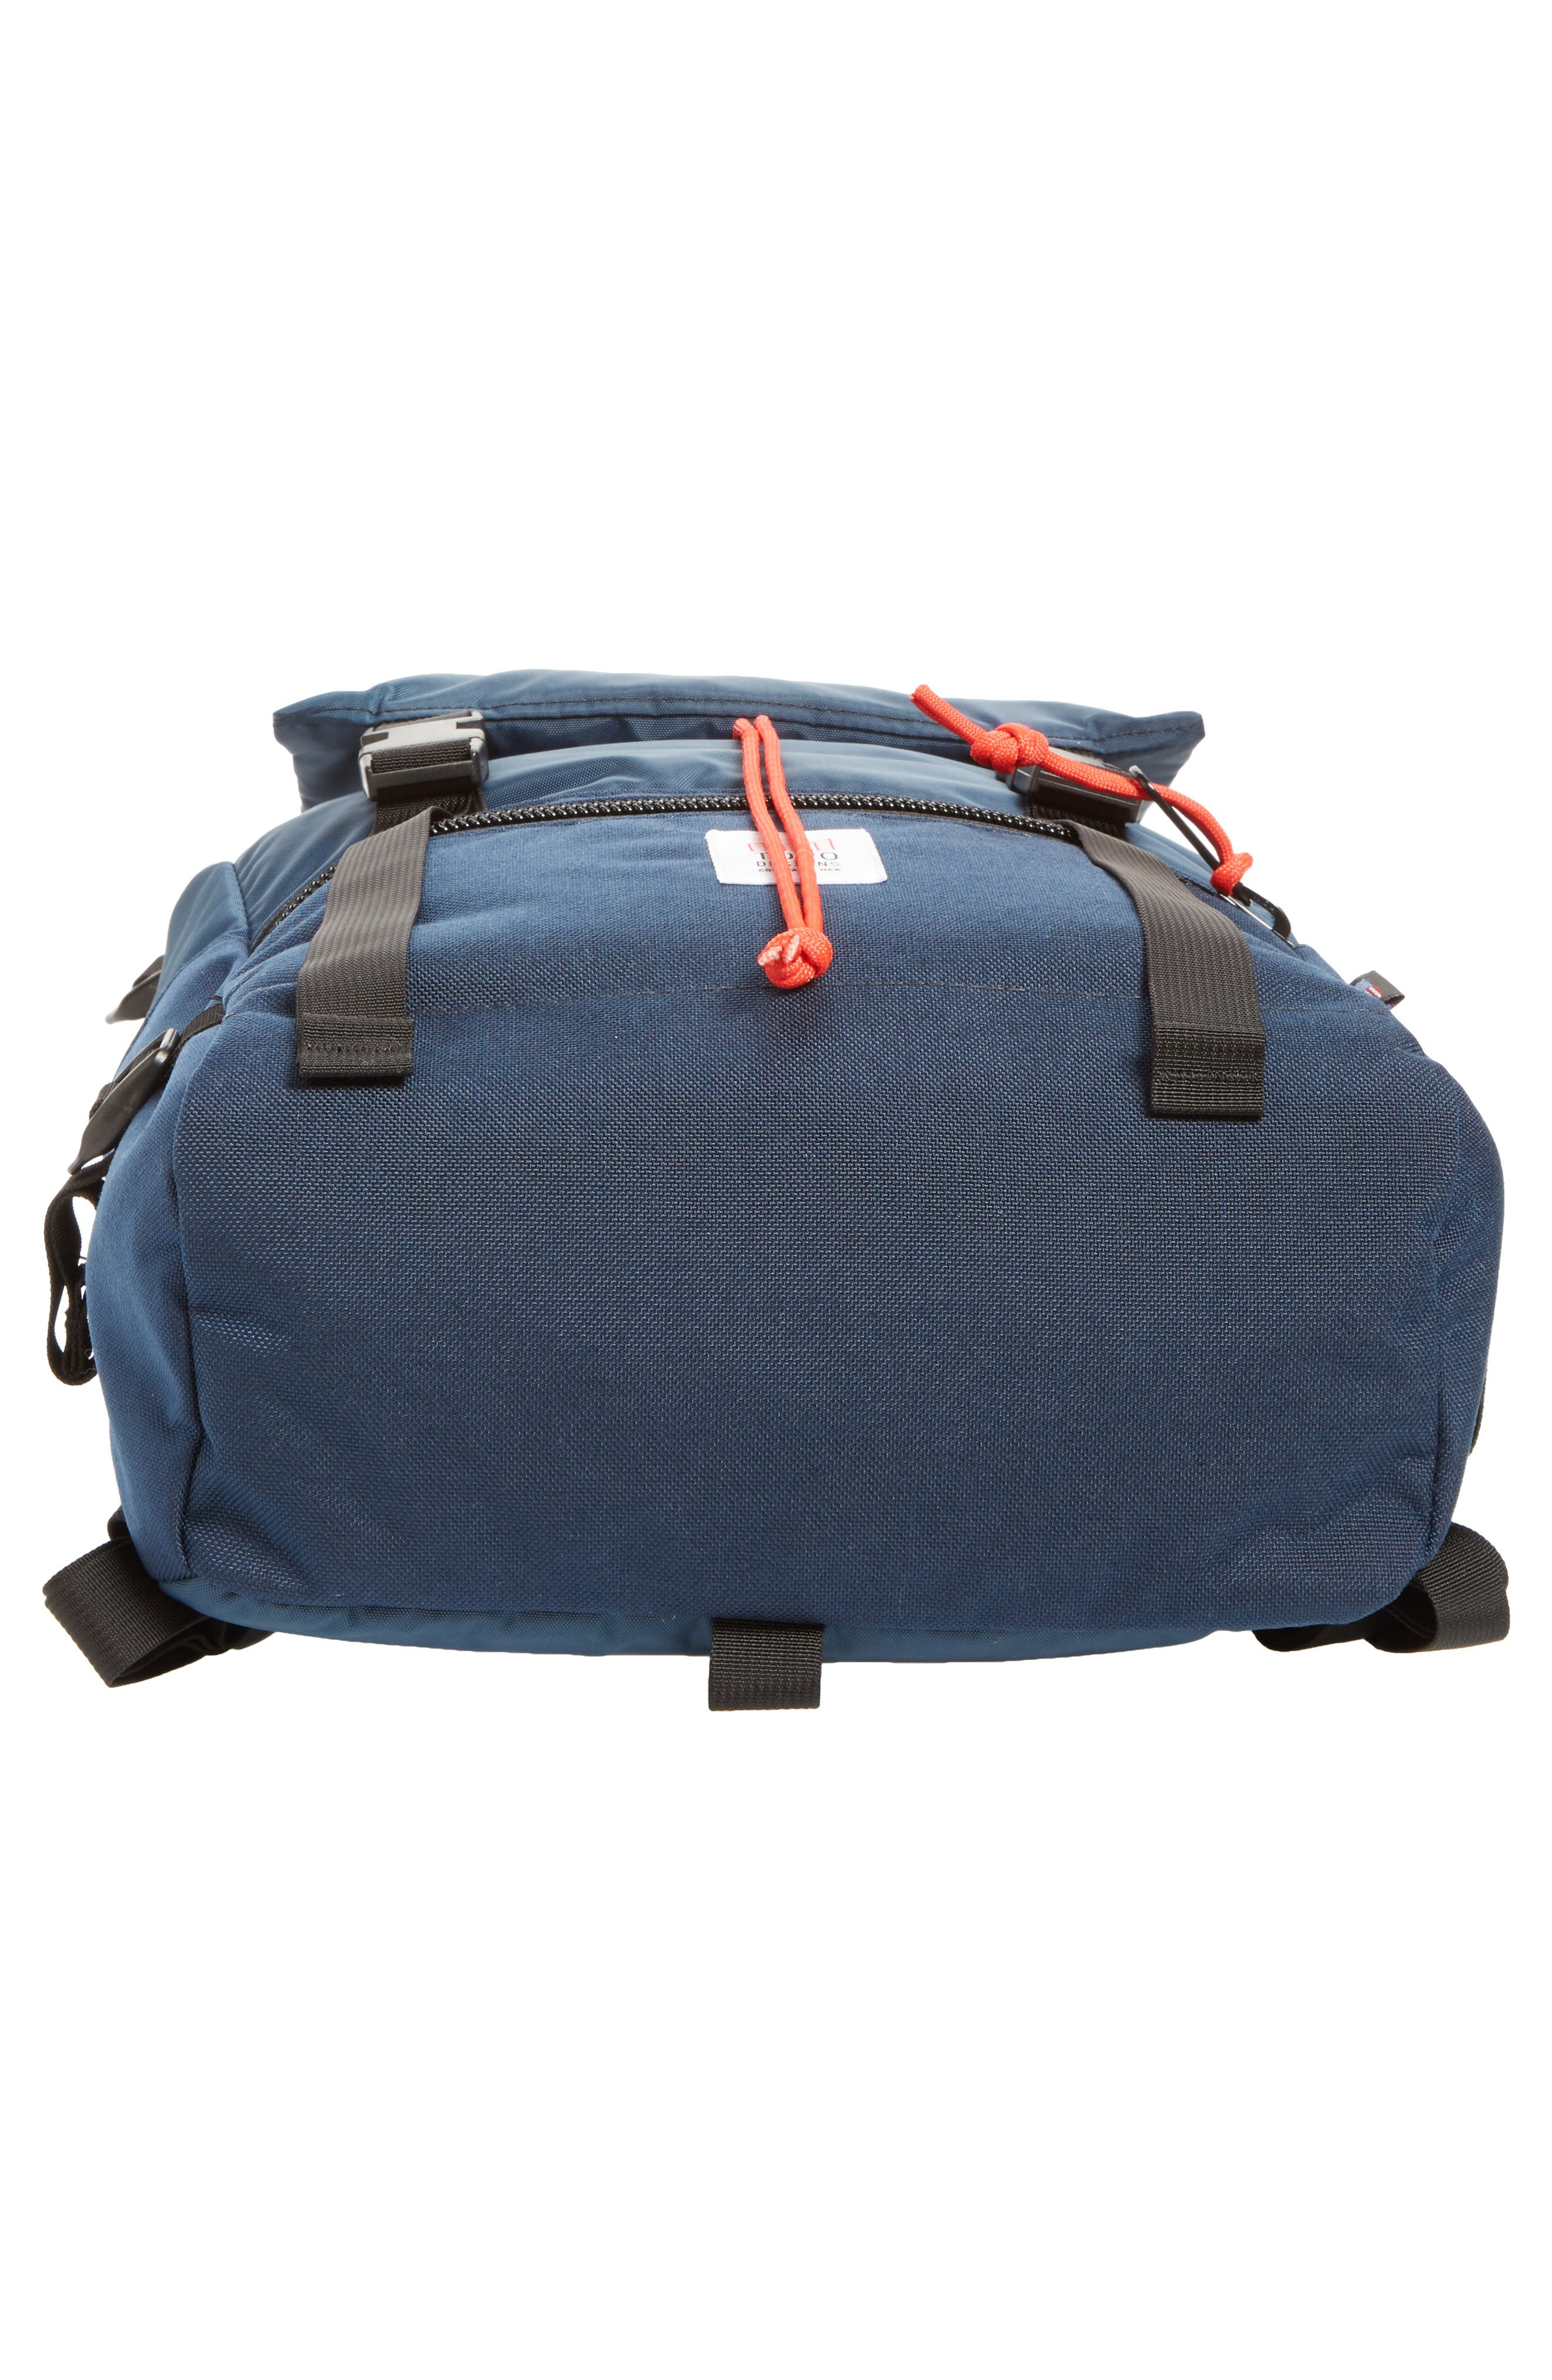 Rover Backpack,                             Alternate thumbnail 6, color,                             NAVY